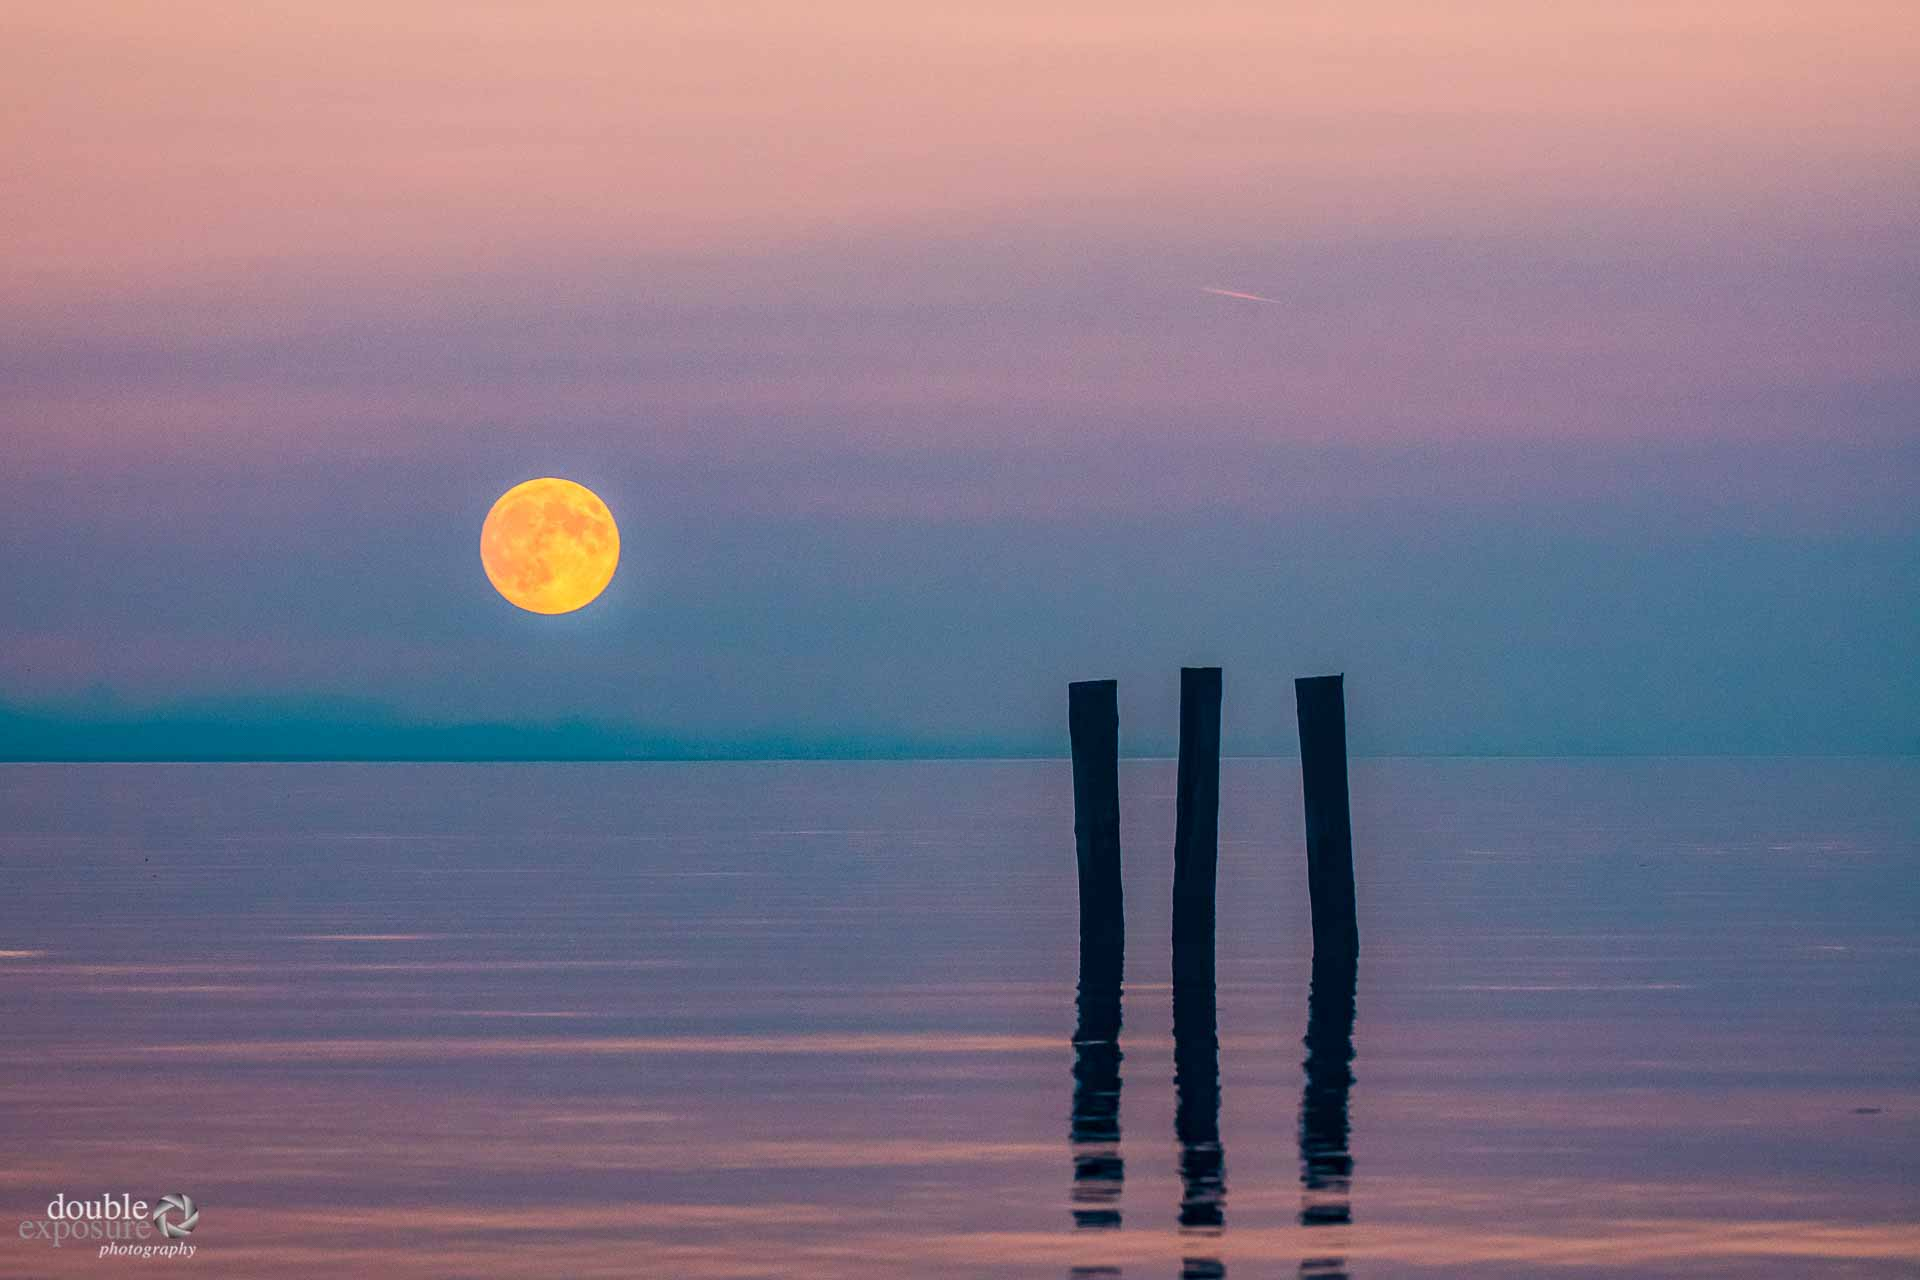 the full moon watches over the evening twilight.